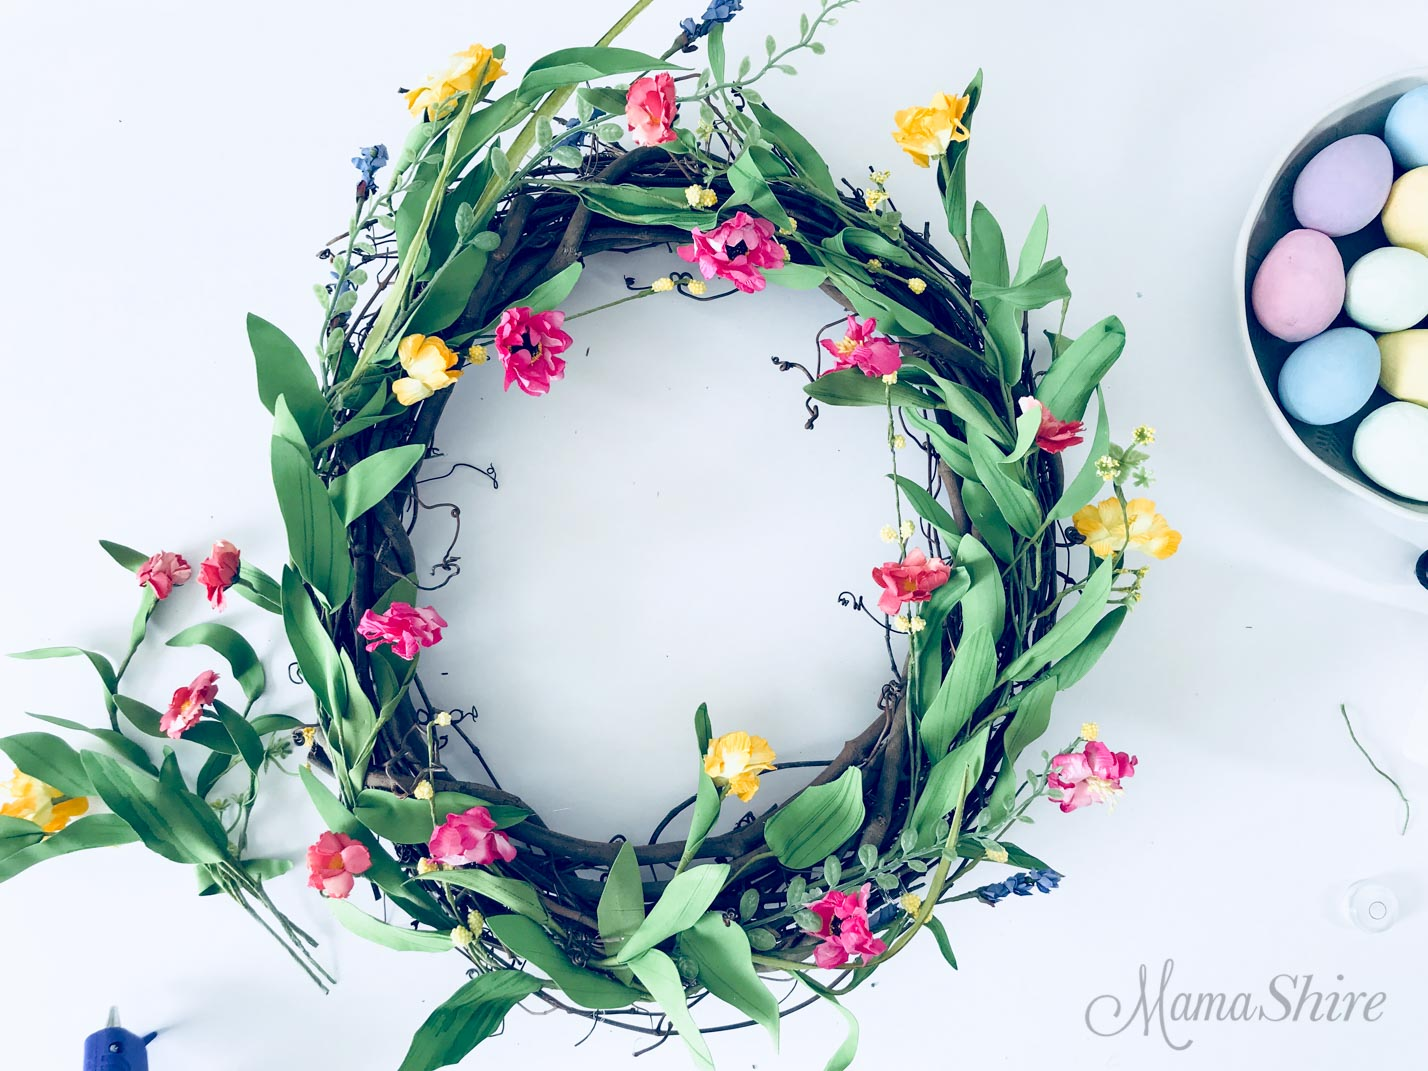 Grapevine wreath with flowers.